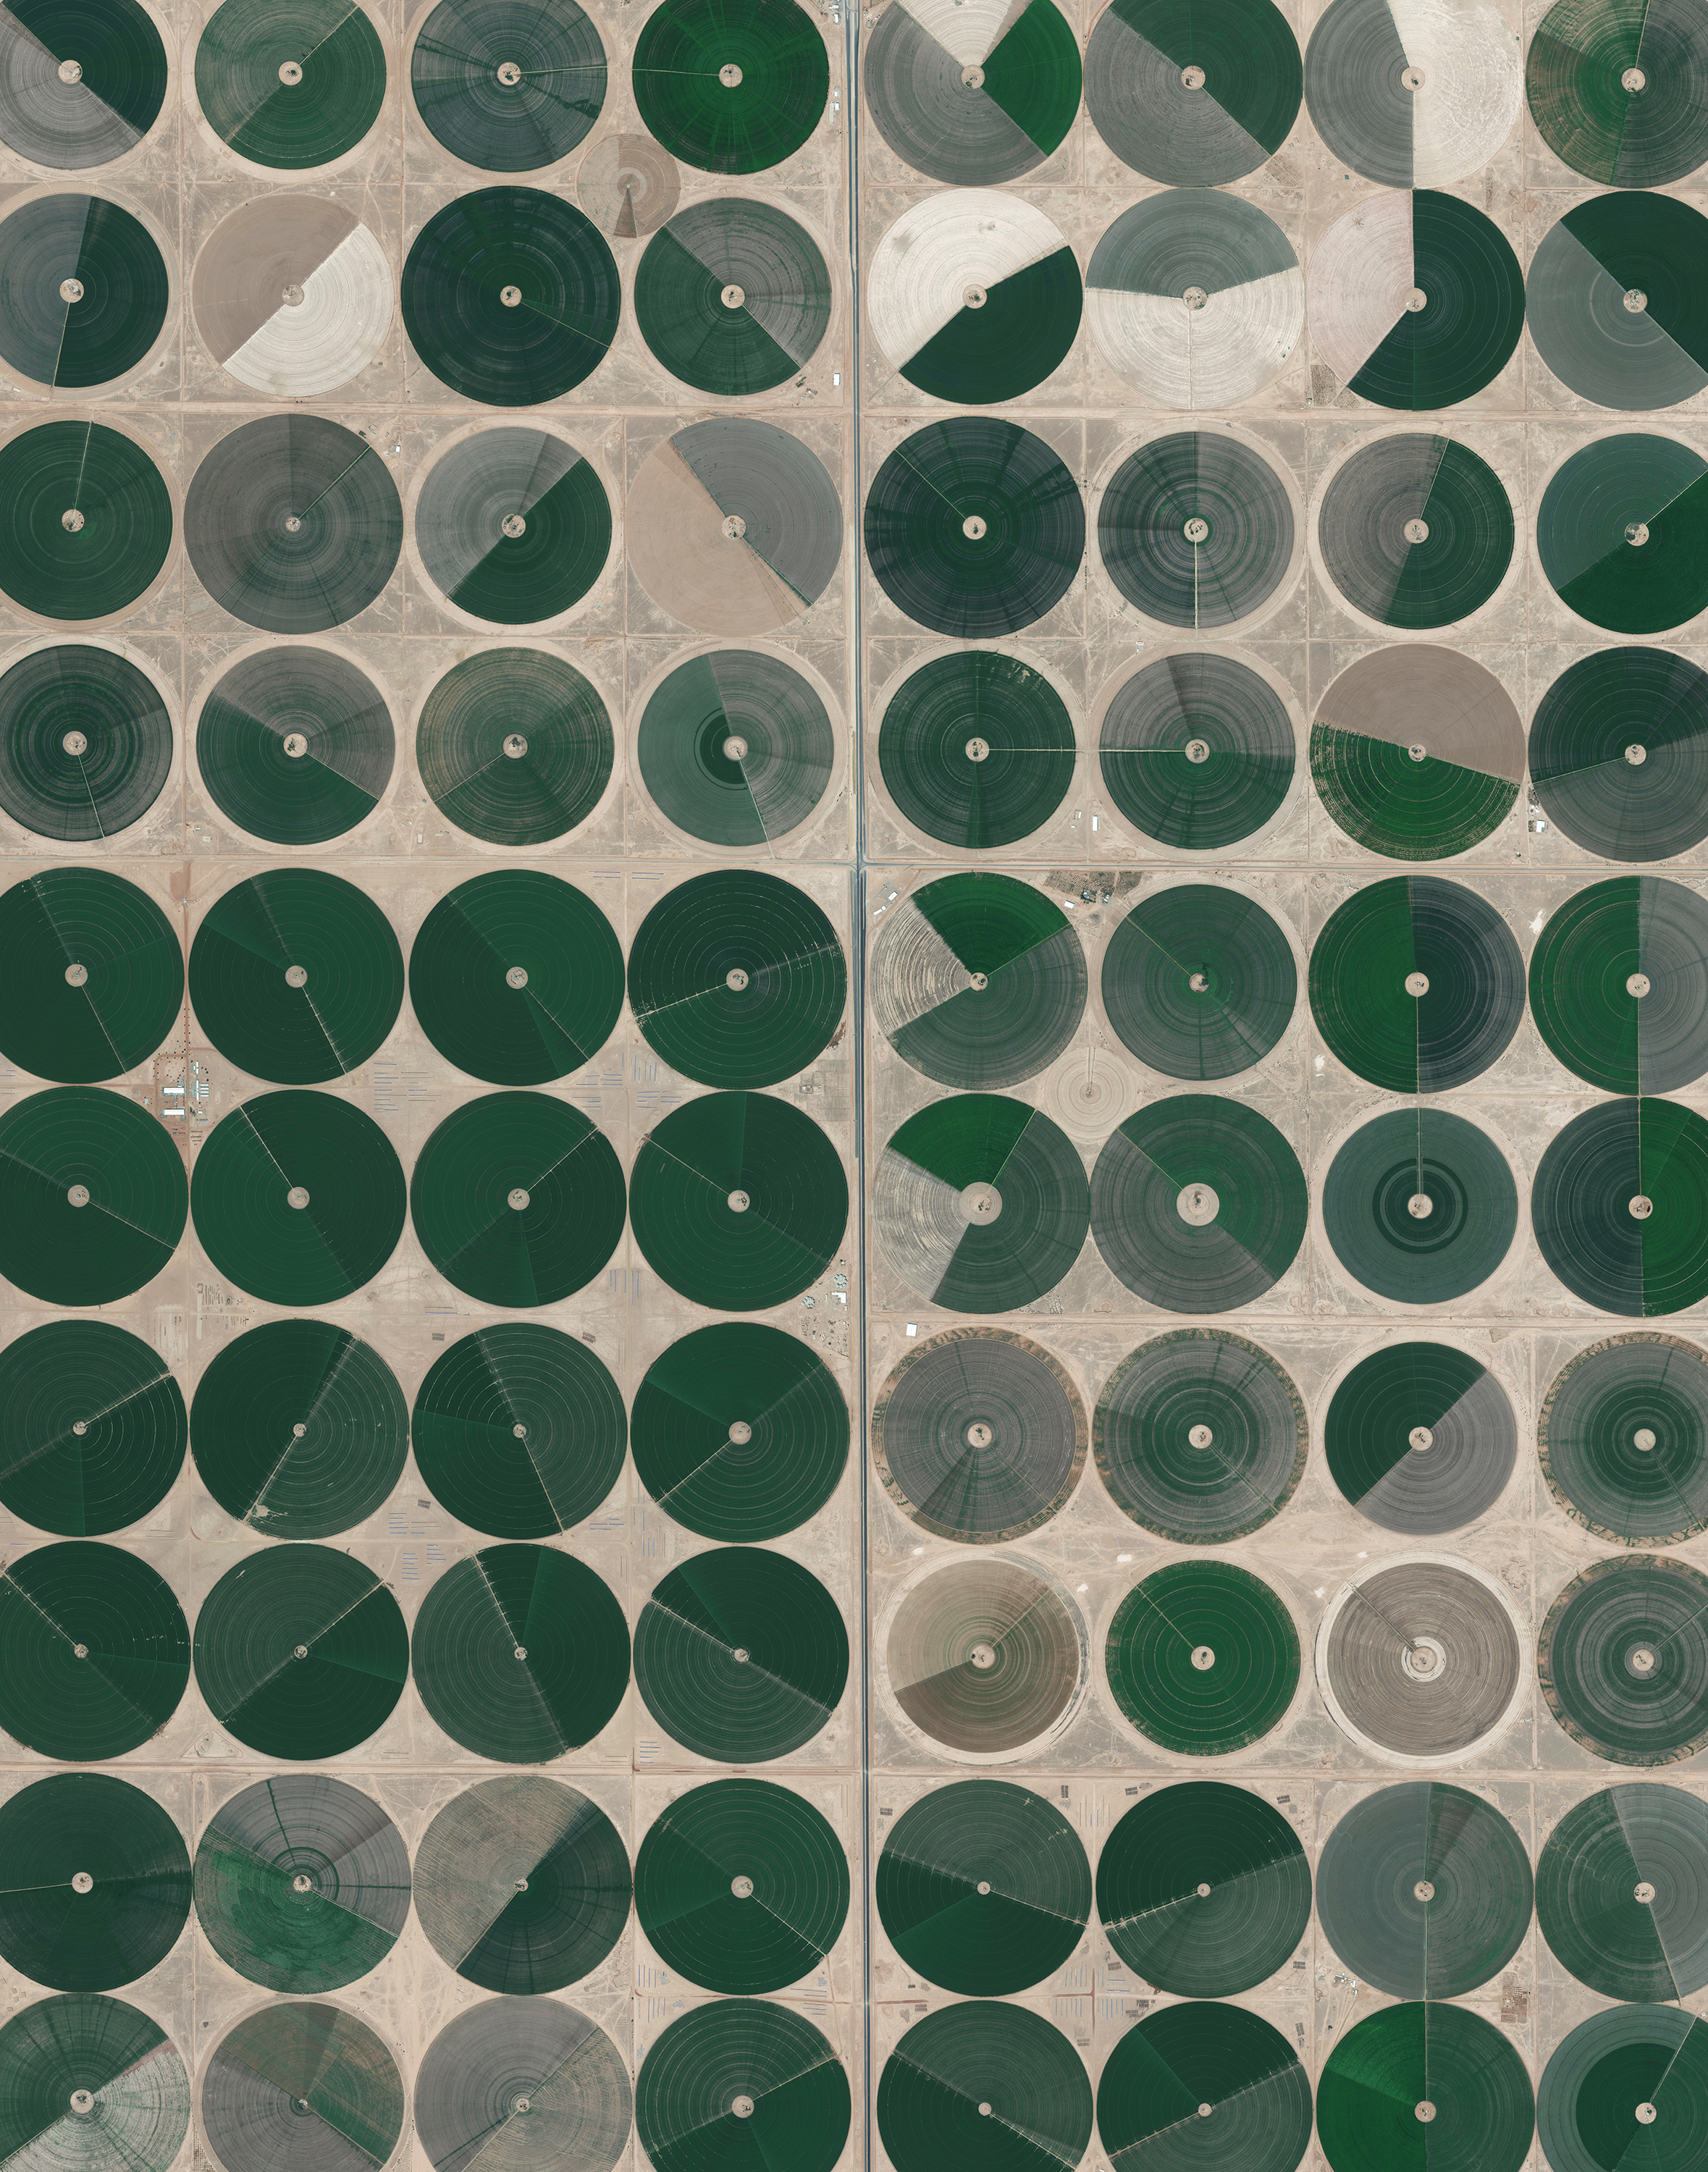 6/16/2016  Pivot Irrigation Fields   Wadi As-Sirhan Basin, Saudi Arabia   30.089890096°, 38.271806556°     Center pivot irrigation is used throughout the Wadi As-Sirhan Basin of Saudi Arabia. Water is mined from depths as great as one kilometer (~3,000 ft), pumped to the surface, and evenly distributed by sprinklers that rotate 360 degrees. Spurred by a government effort to strengthen its agriculture sector, cultivated land in Saudi Arabia grew from 400,000 acres in 1976 to more than 8 million acres by 1993. For a sense of scale, the total area shown in this Overview is approximately forty square miles (32,000 acres).